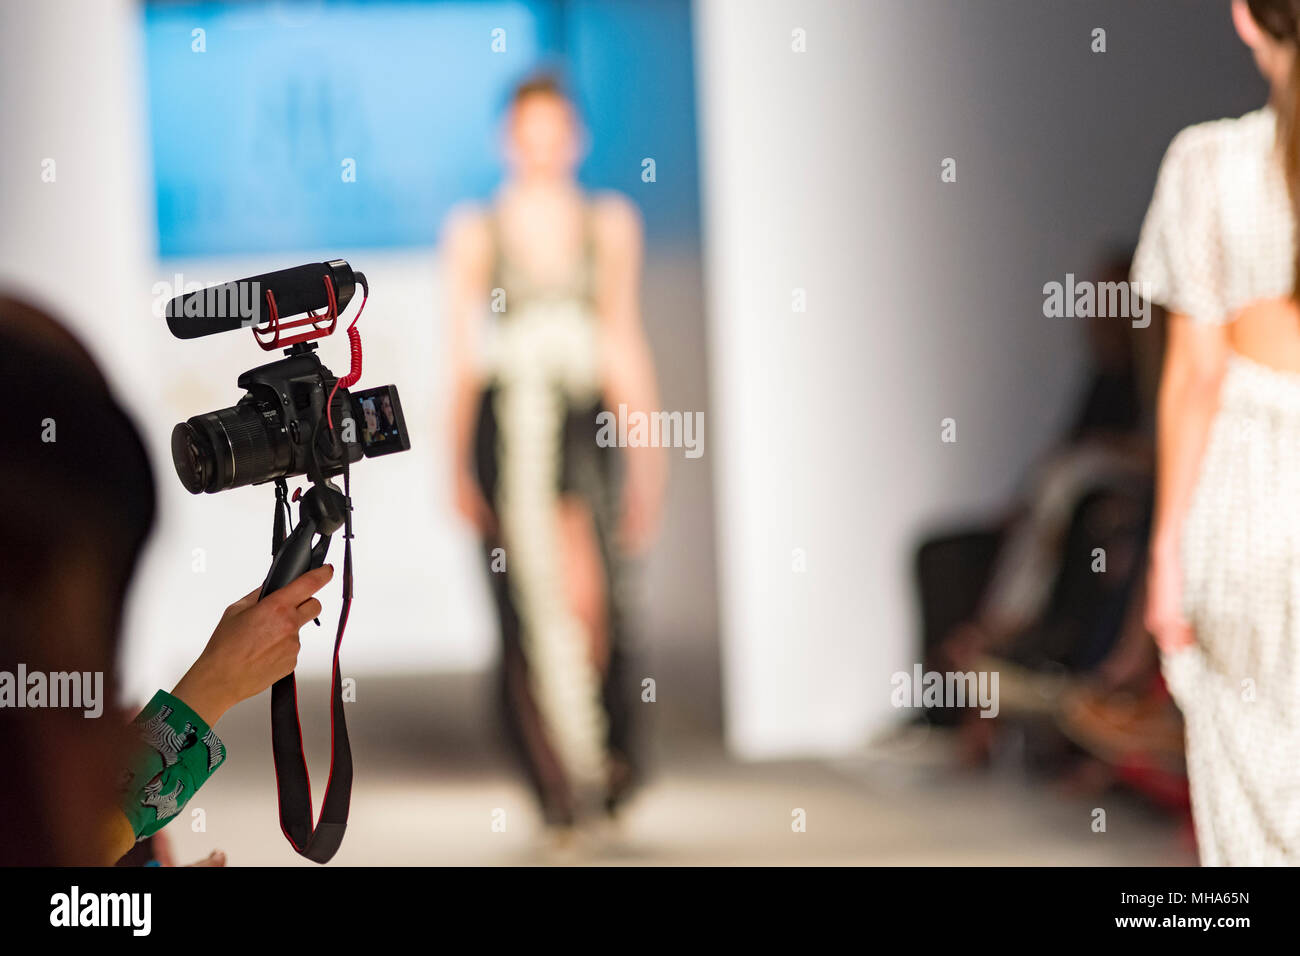 people from audience filming them self in a fashion show - Stock Image